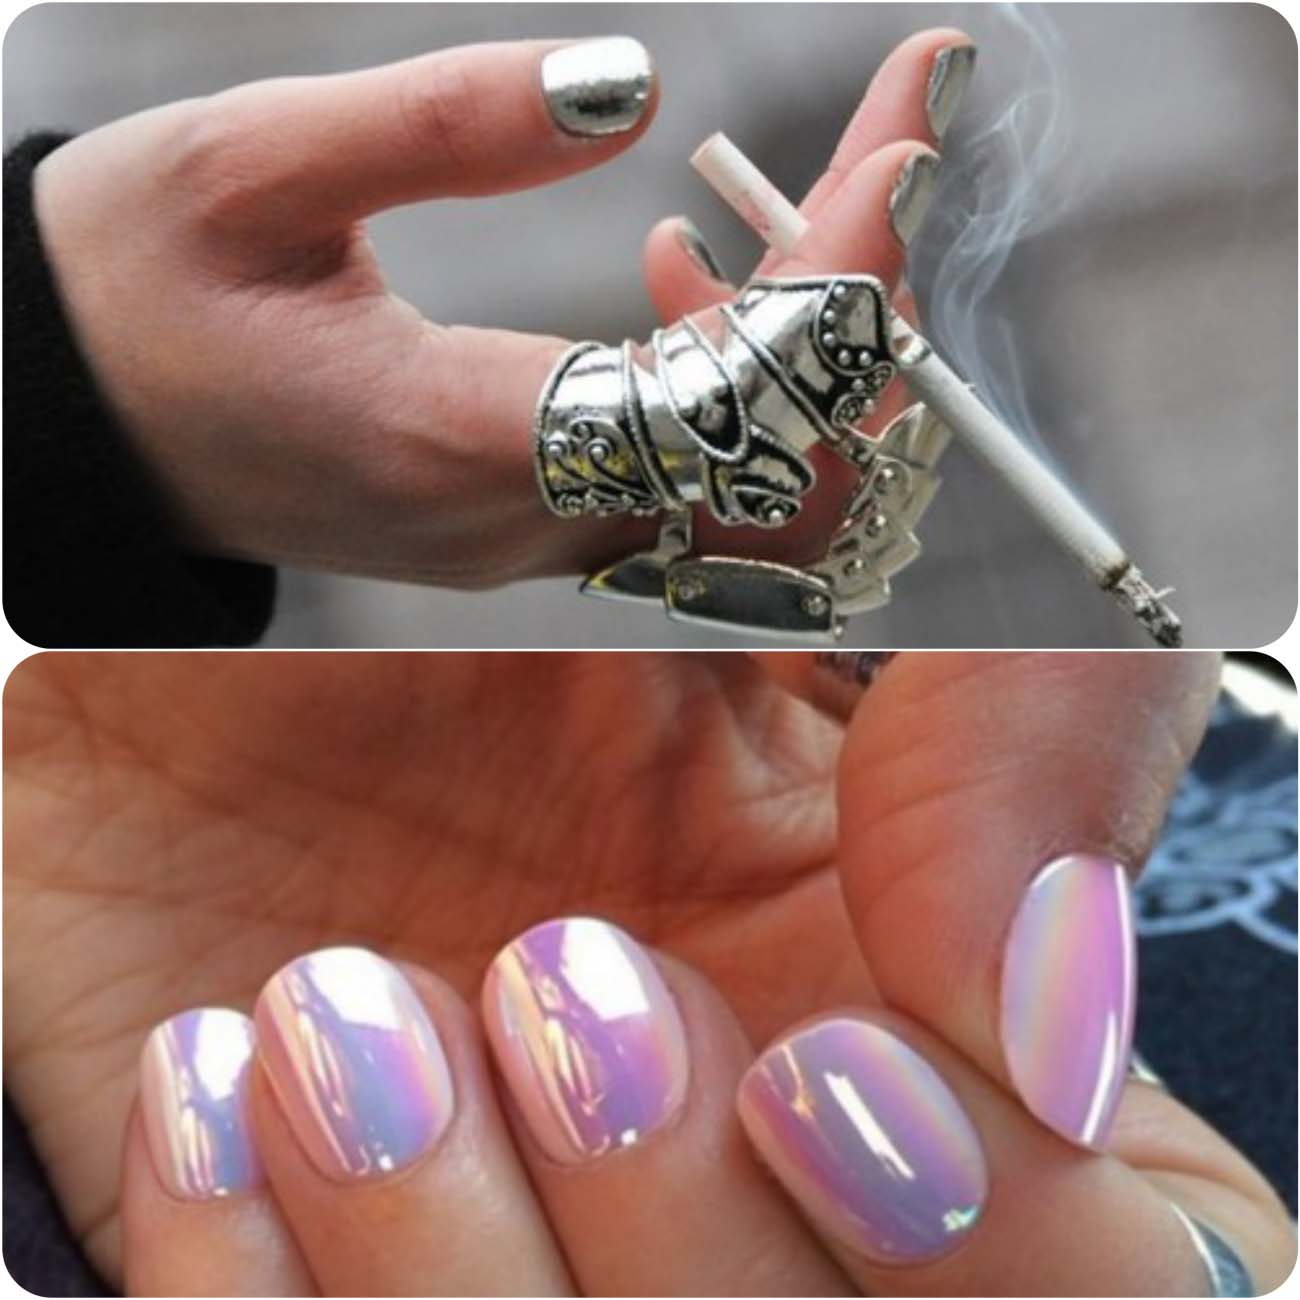 Best Dazzling Reflecting Nail Art Designs For Girls....styloplanet (7)